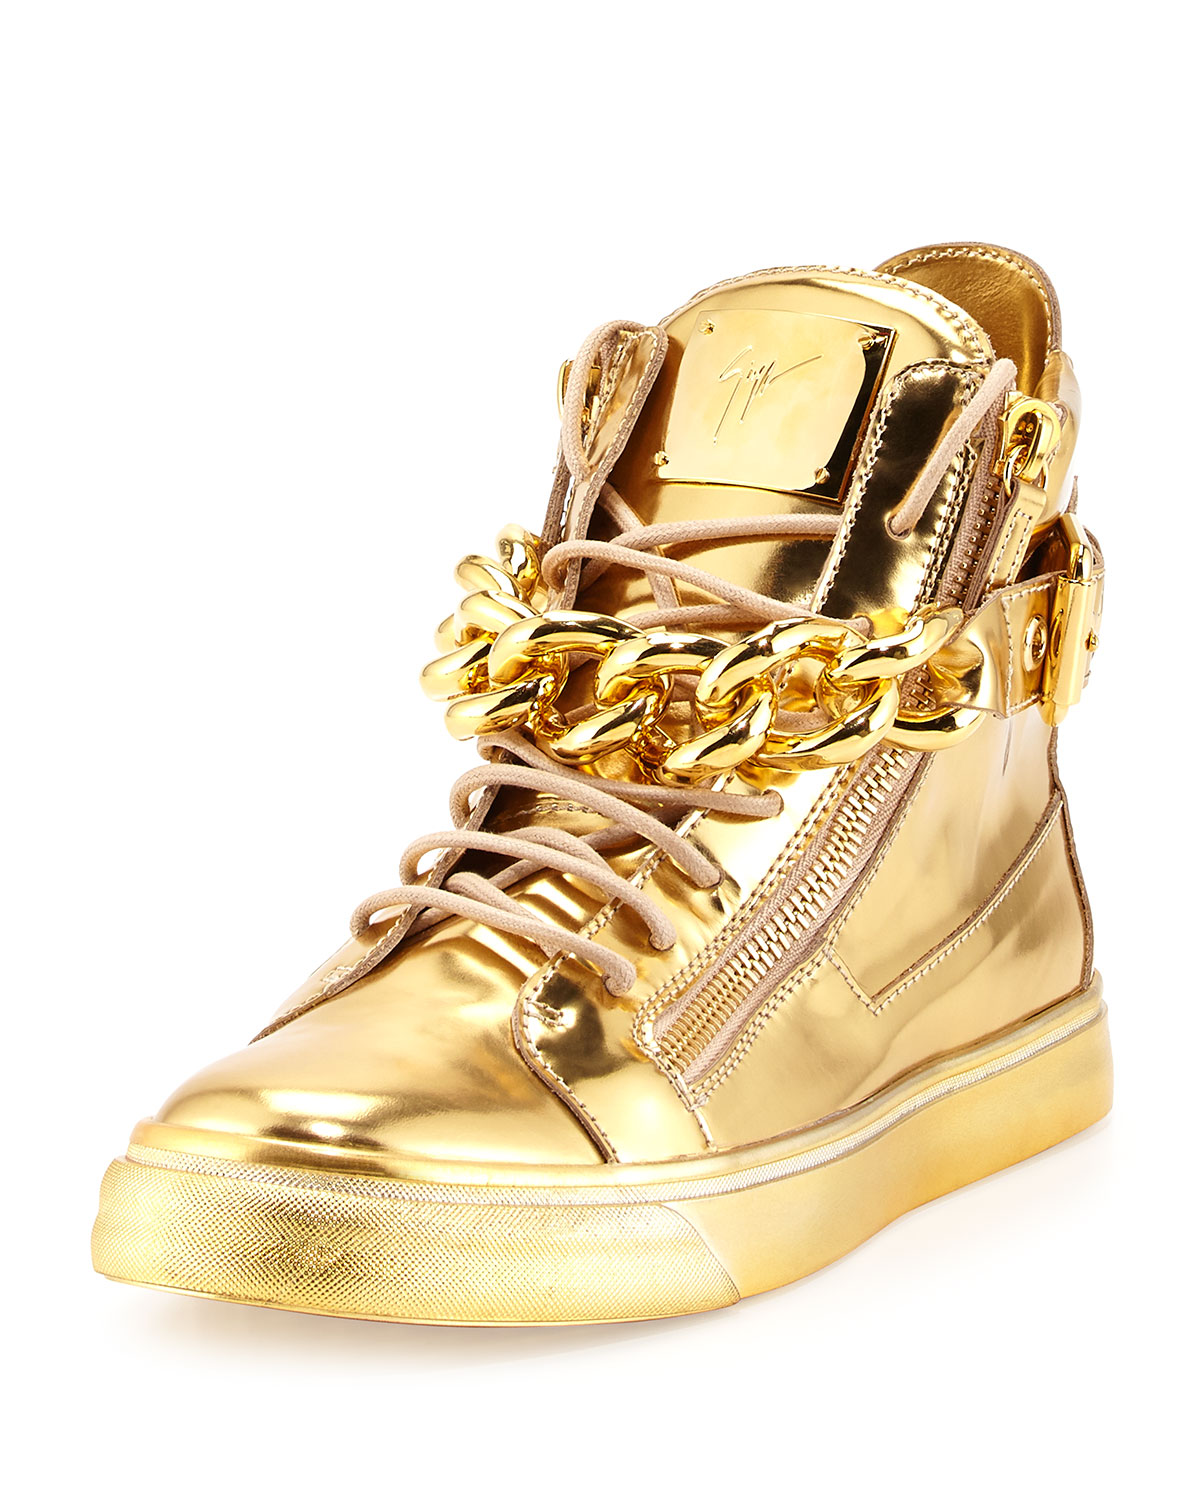 For the Price These Shoes Better be Made of Solid Gold!